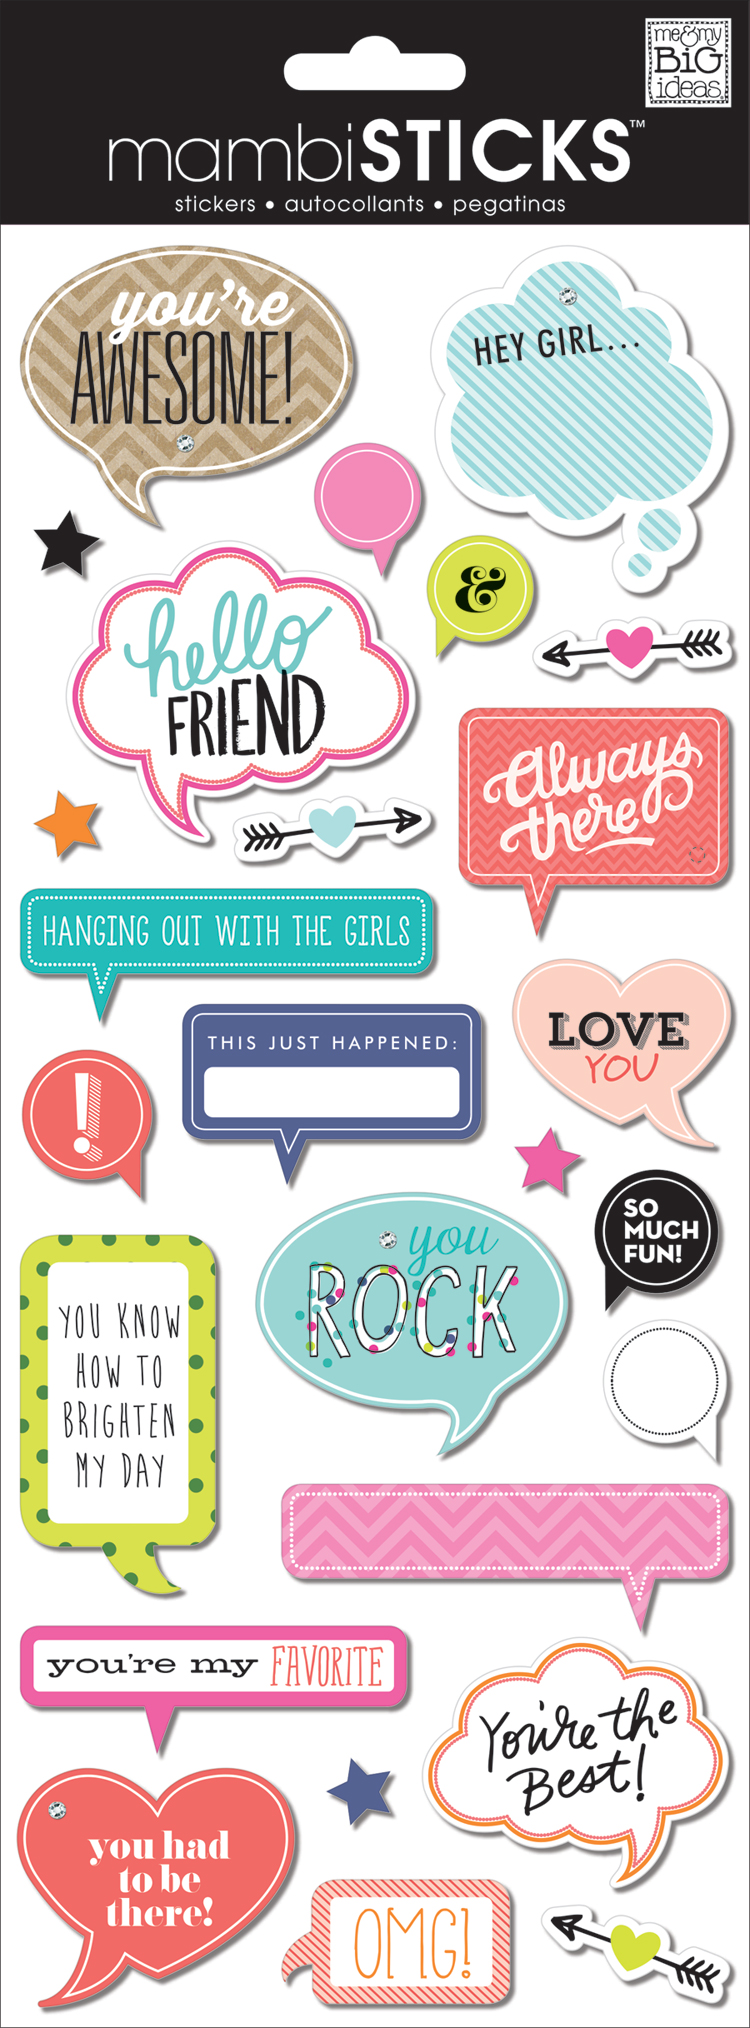 'You're Awesome!' mambiSTICKS chipboard dimensional stickers | me & my BIG ideas.jpg